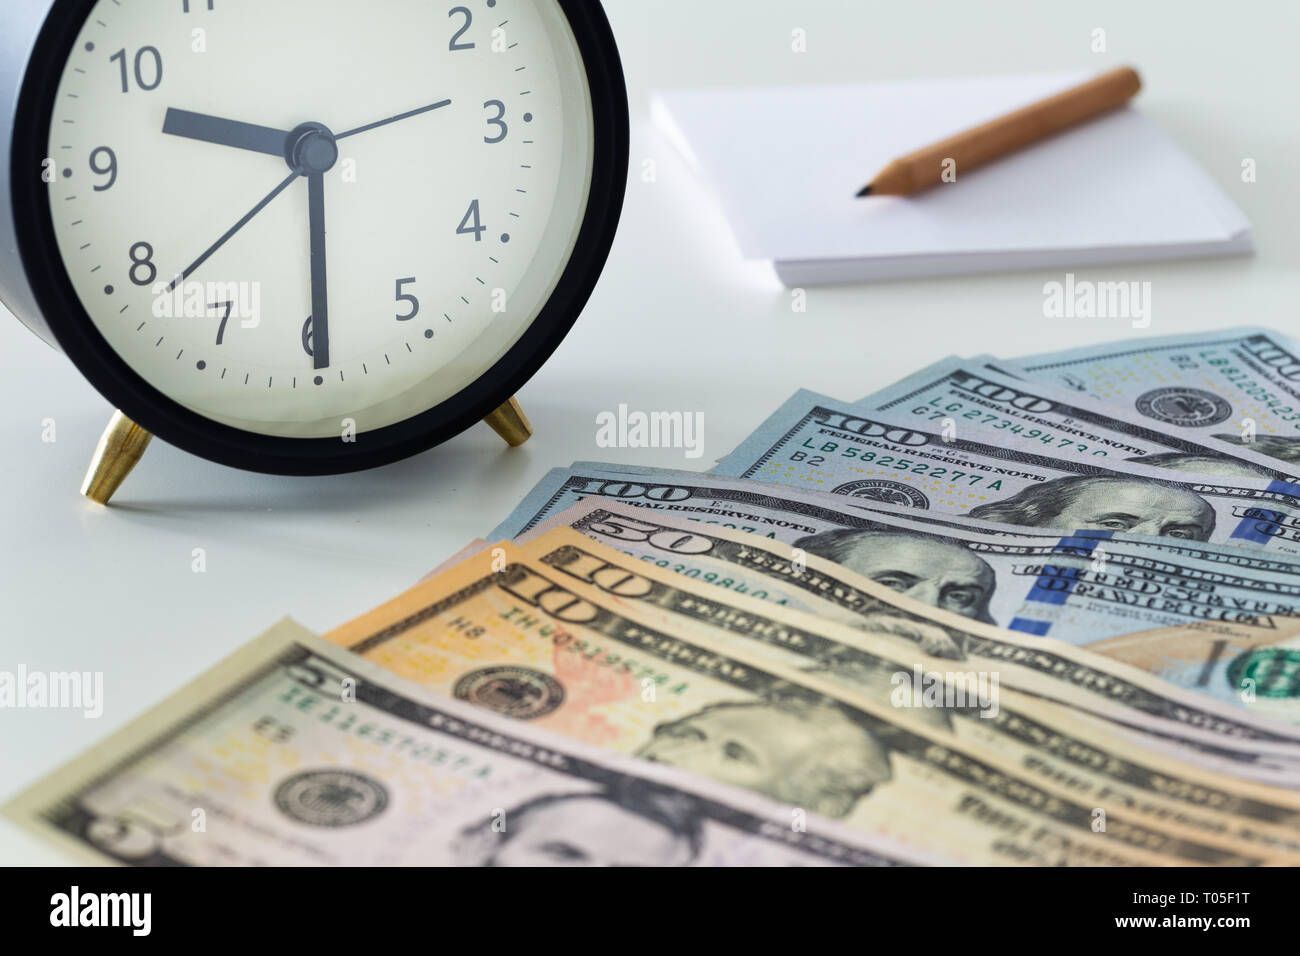 American dollars with an alarm clock, a page and a pencil - Stock Image